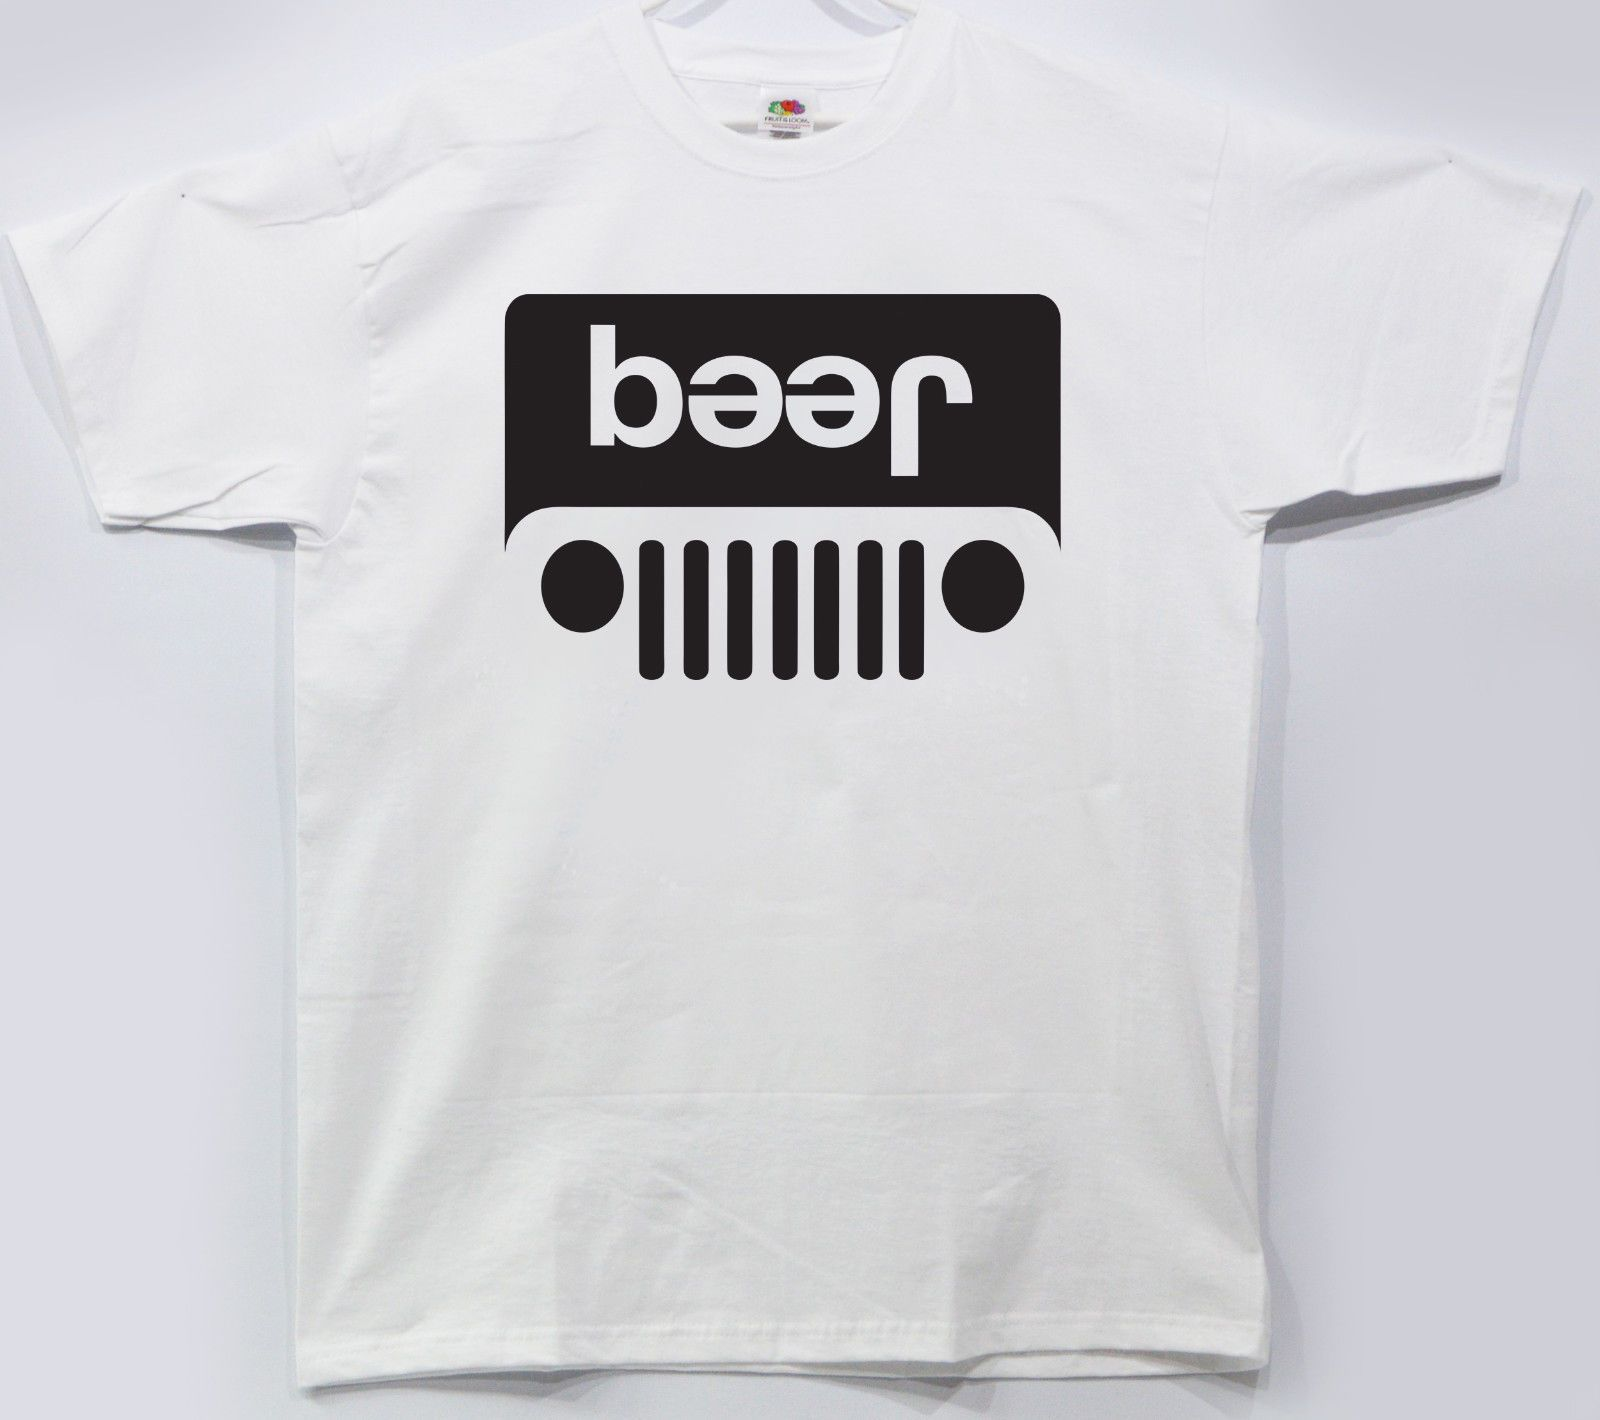 Details About T Shirt Jeep Beer Funny Parody Drinking Graphic Tee